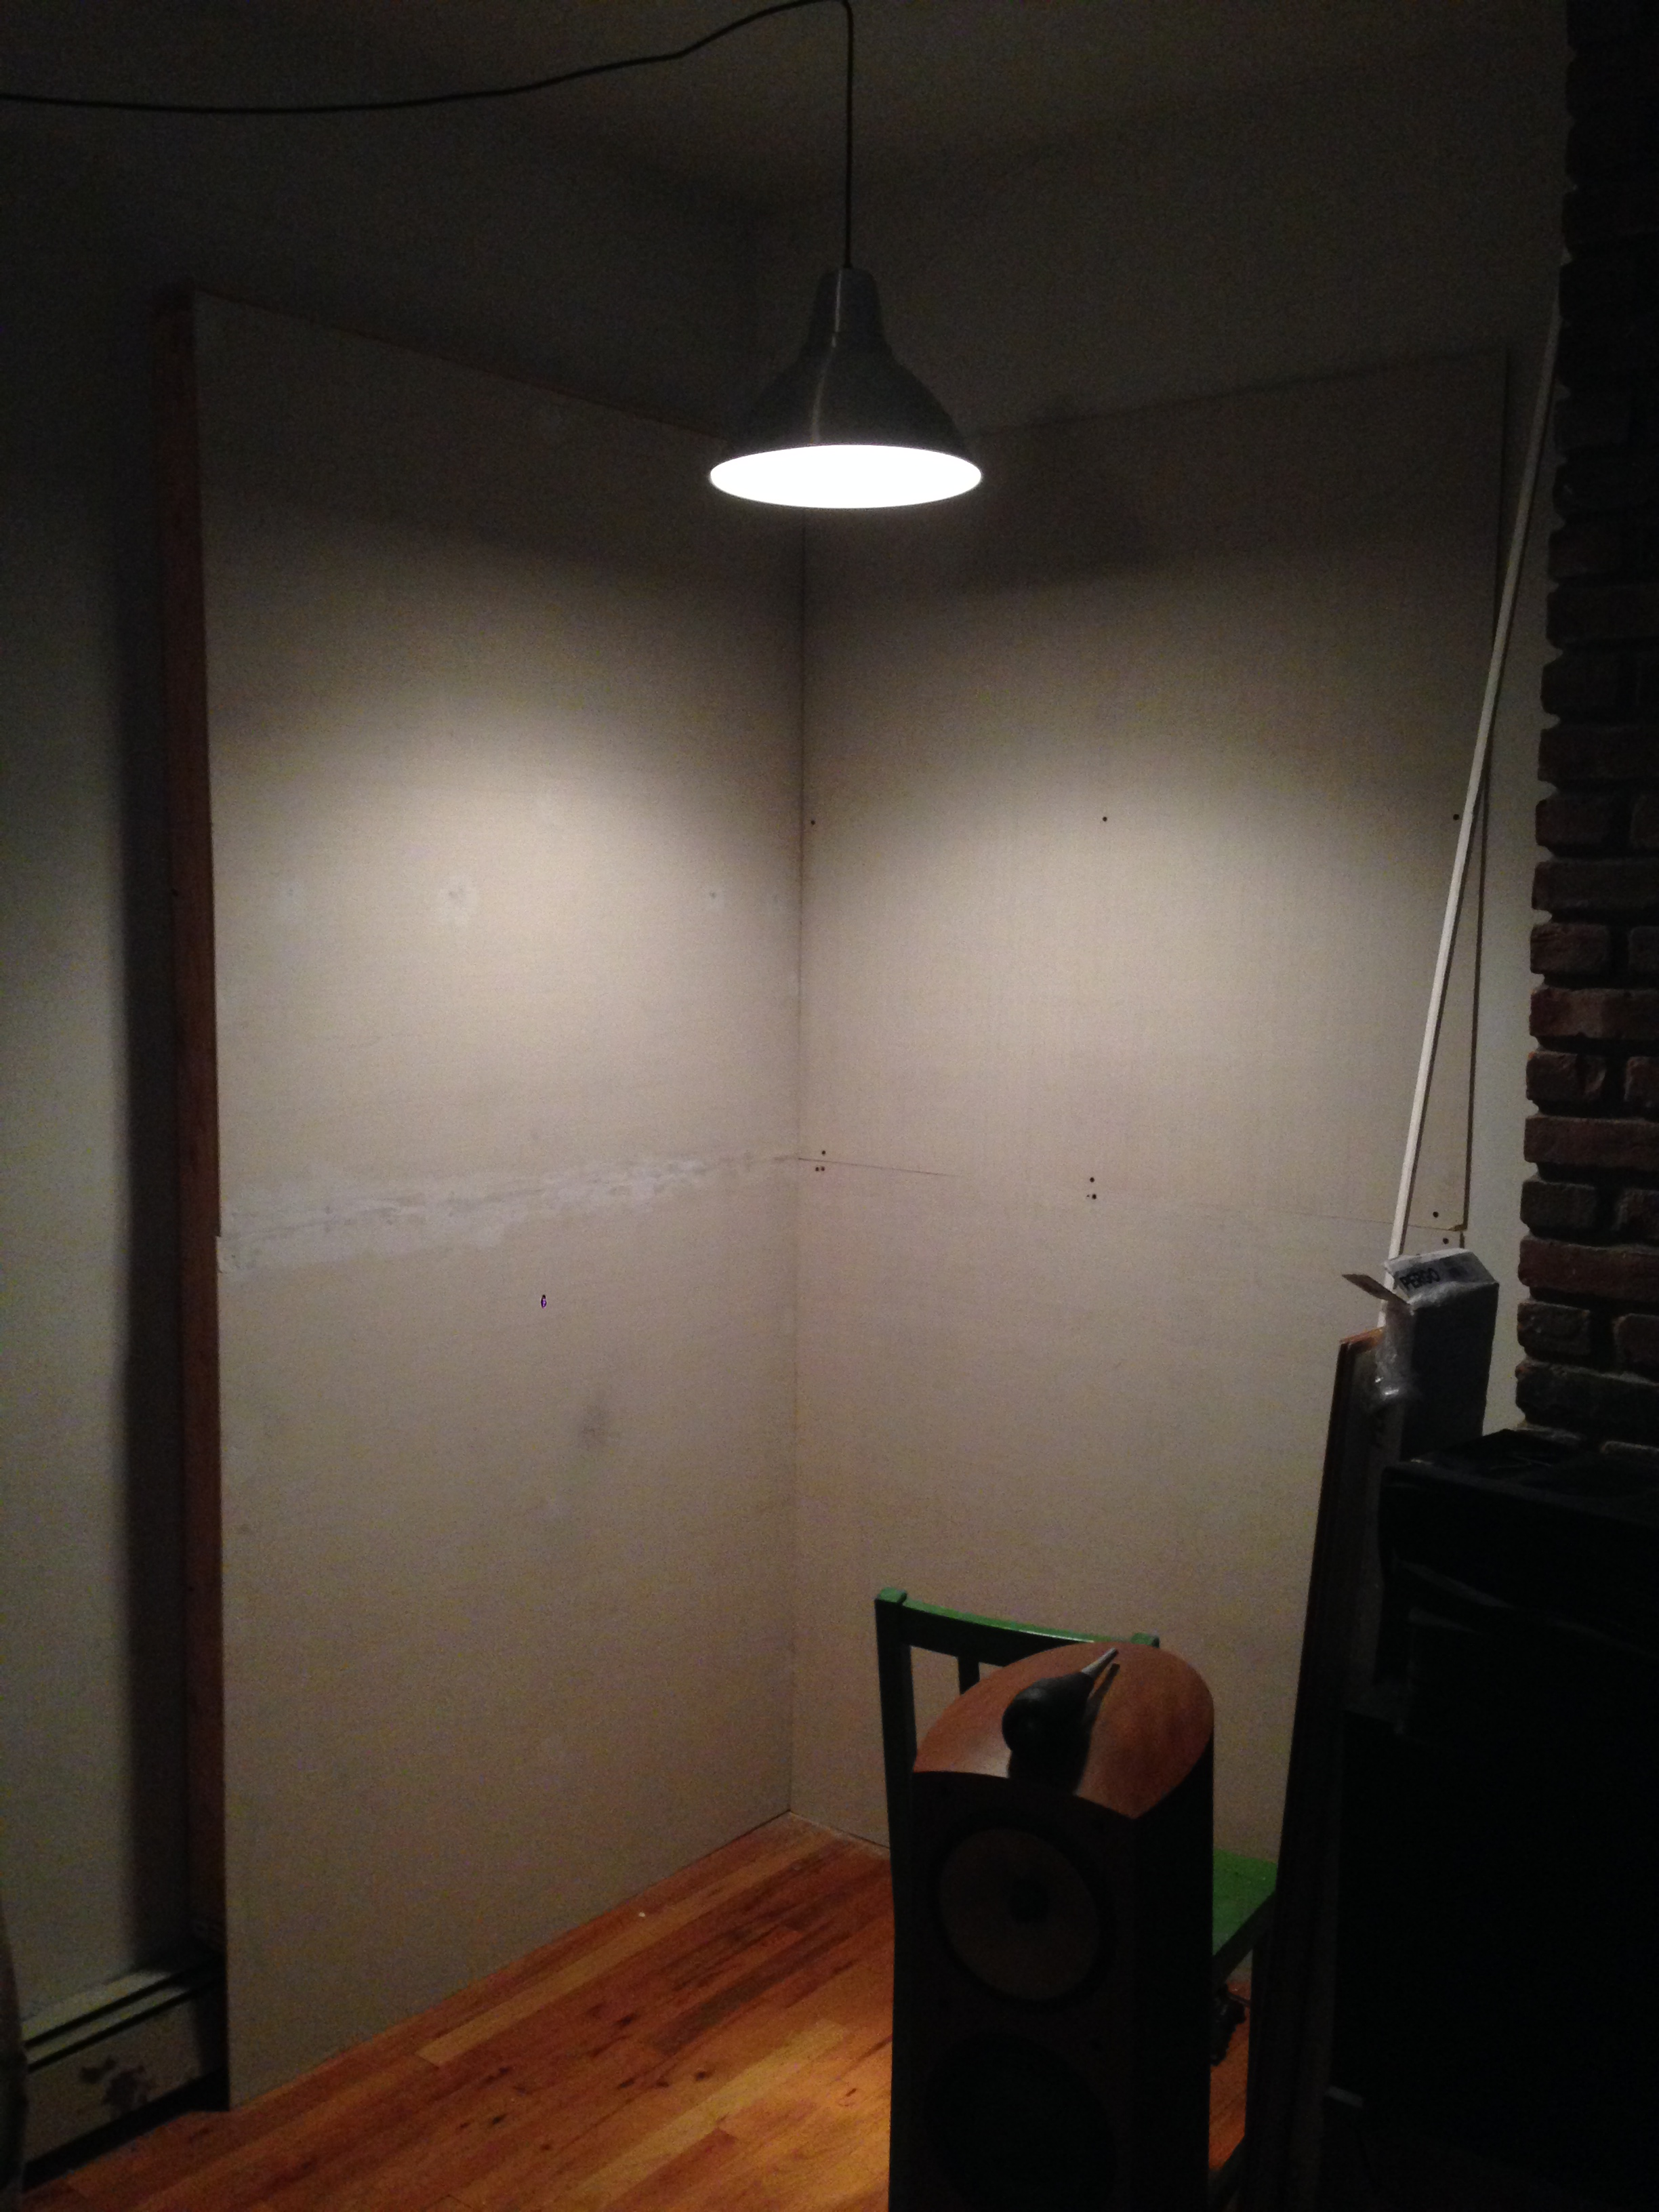 Walls in place